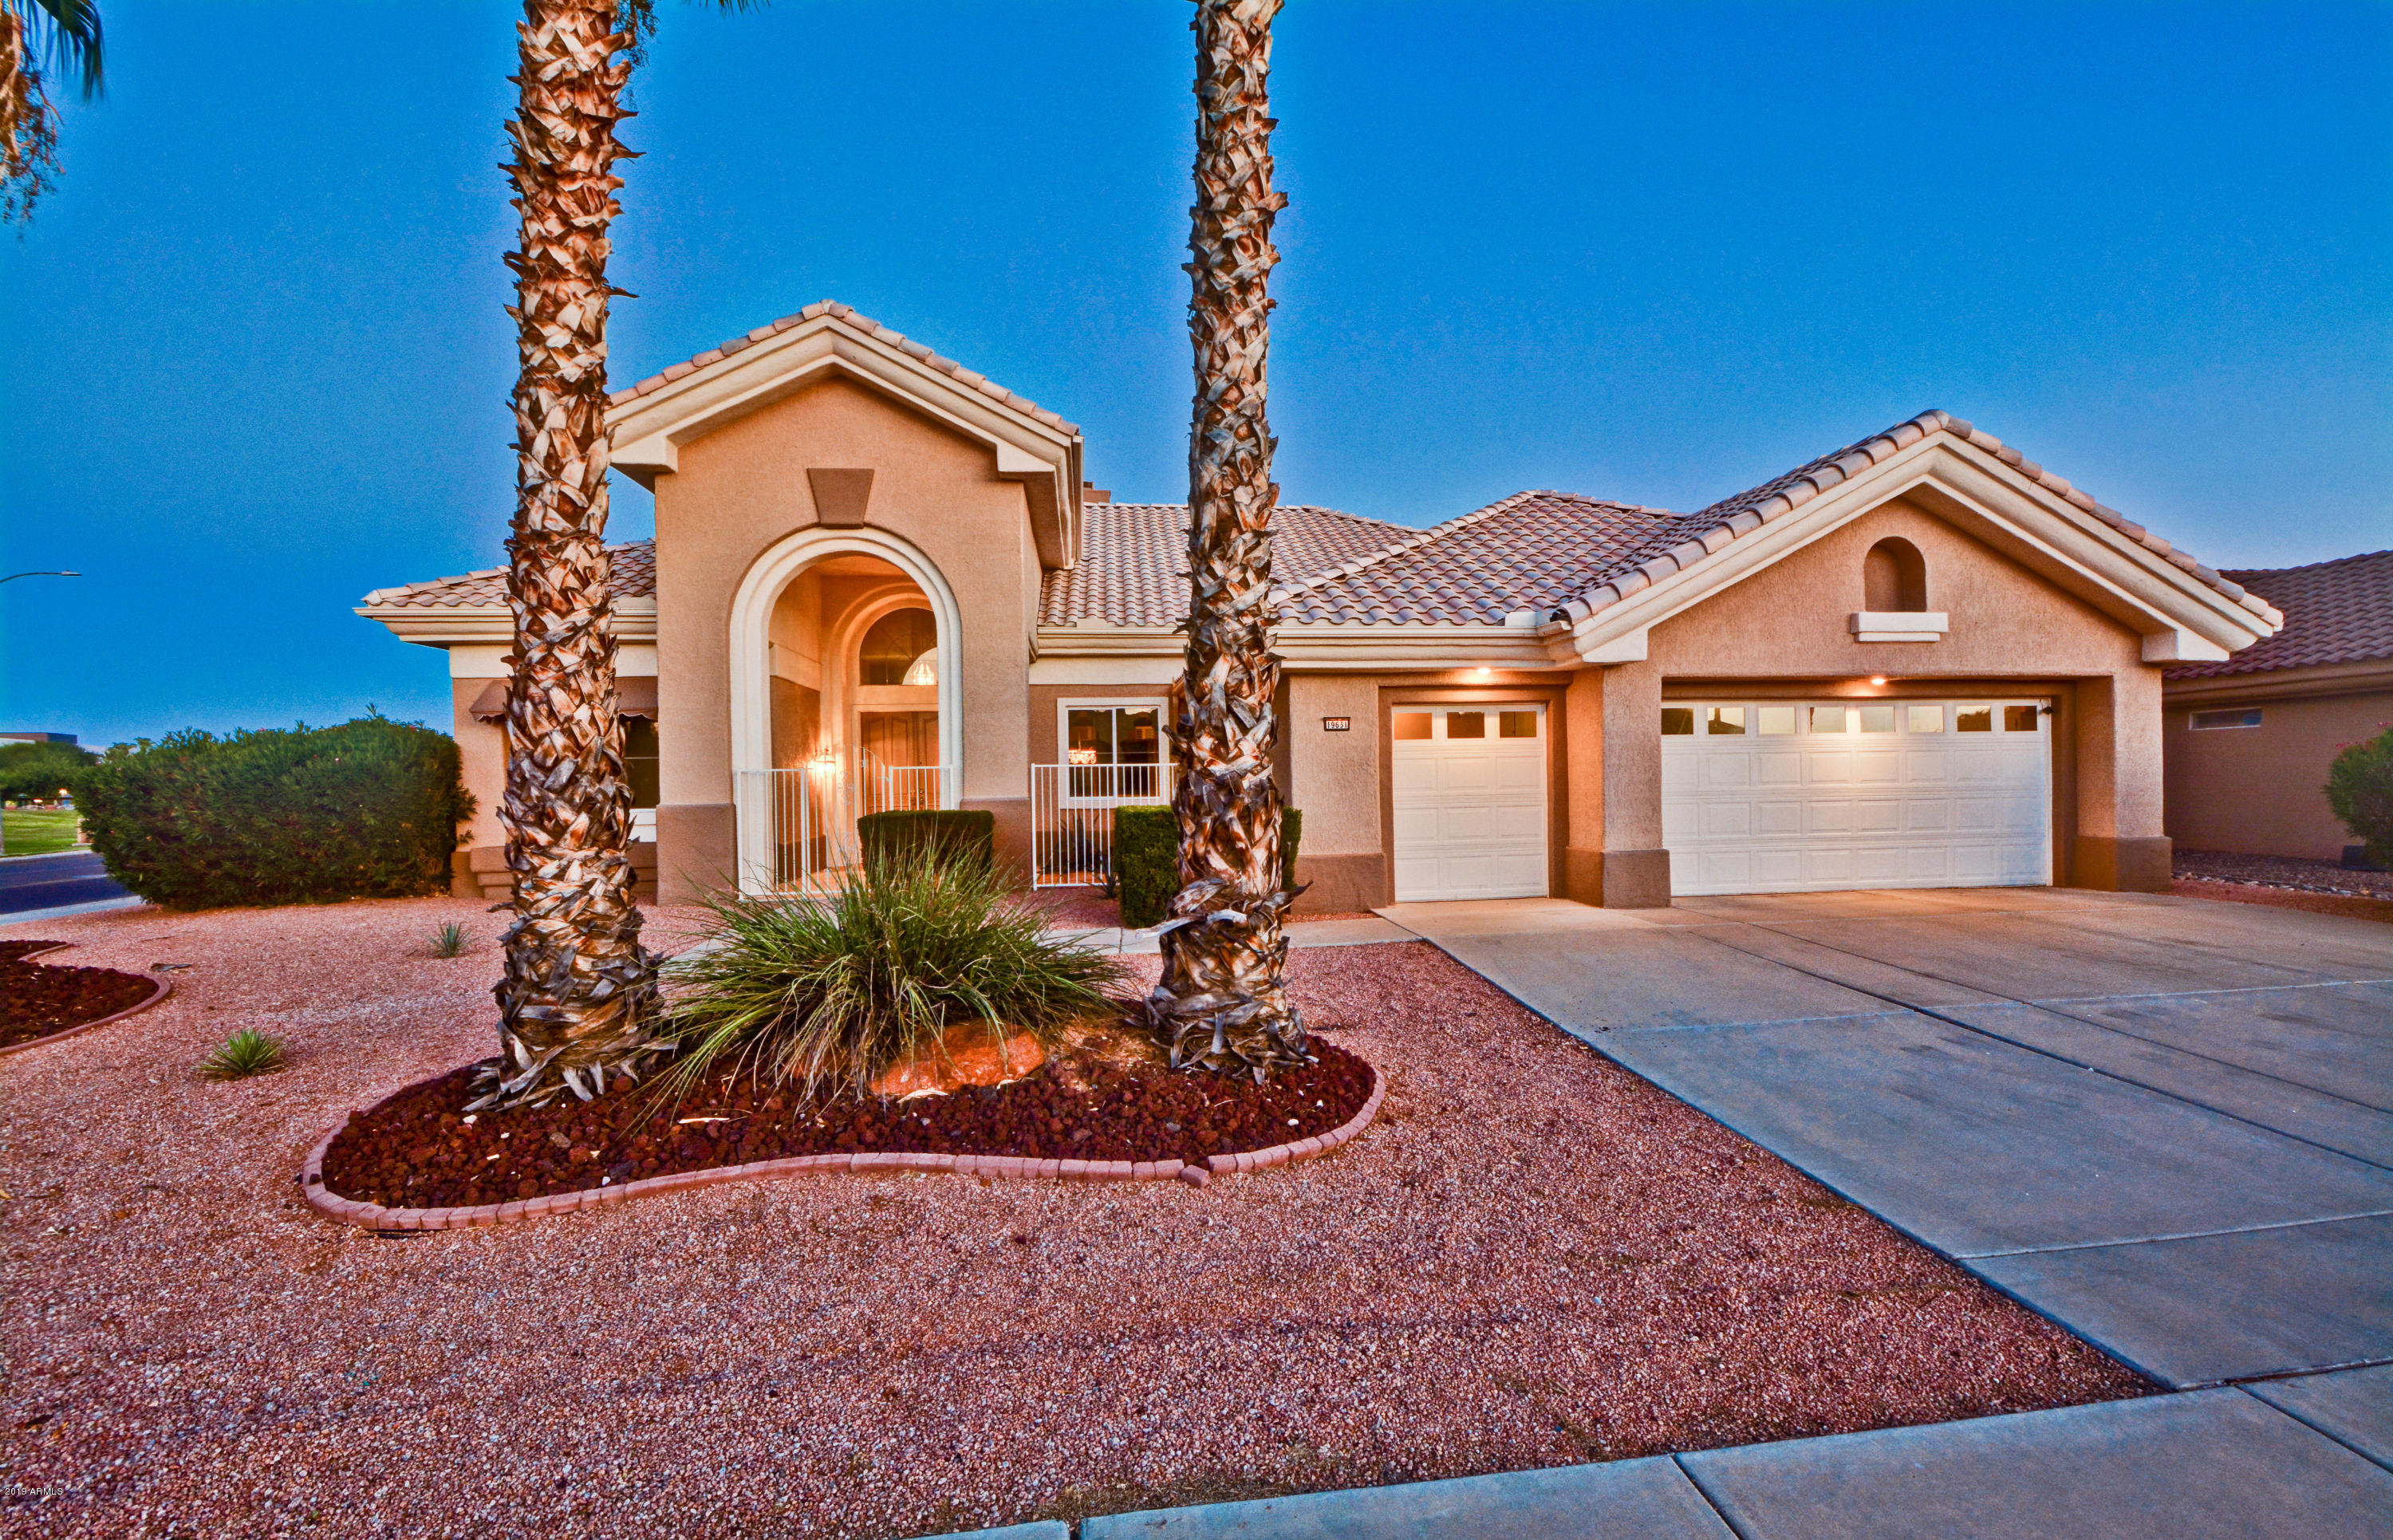 MLS 5967019 19631 N WHITE ROCK Drive, Sun City West, AZ 85375 Sun City West AZ Luxury